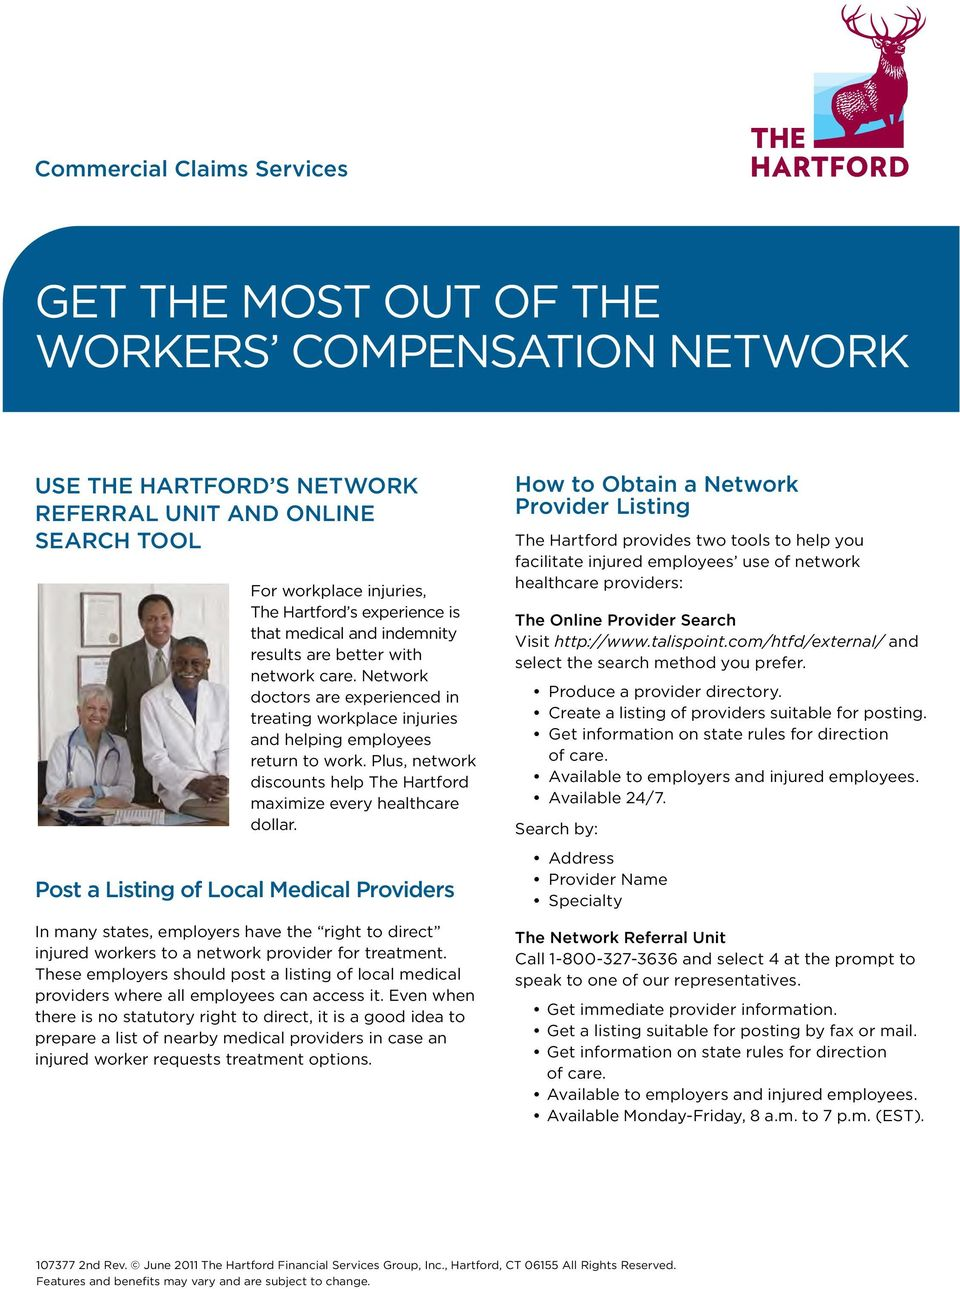 Plus, network discounts help The Hartford maximize every healthcare dollar.